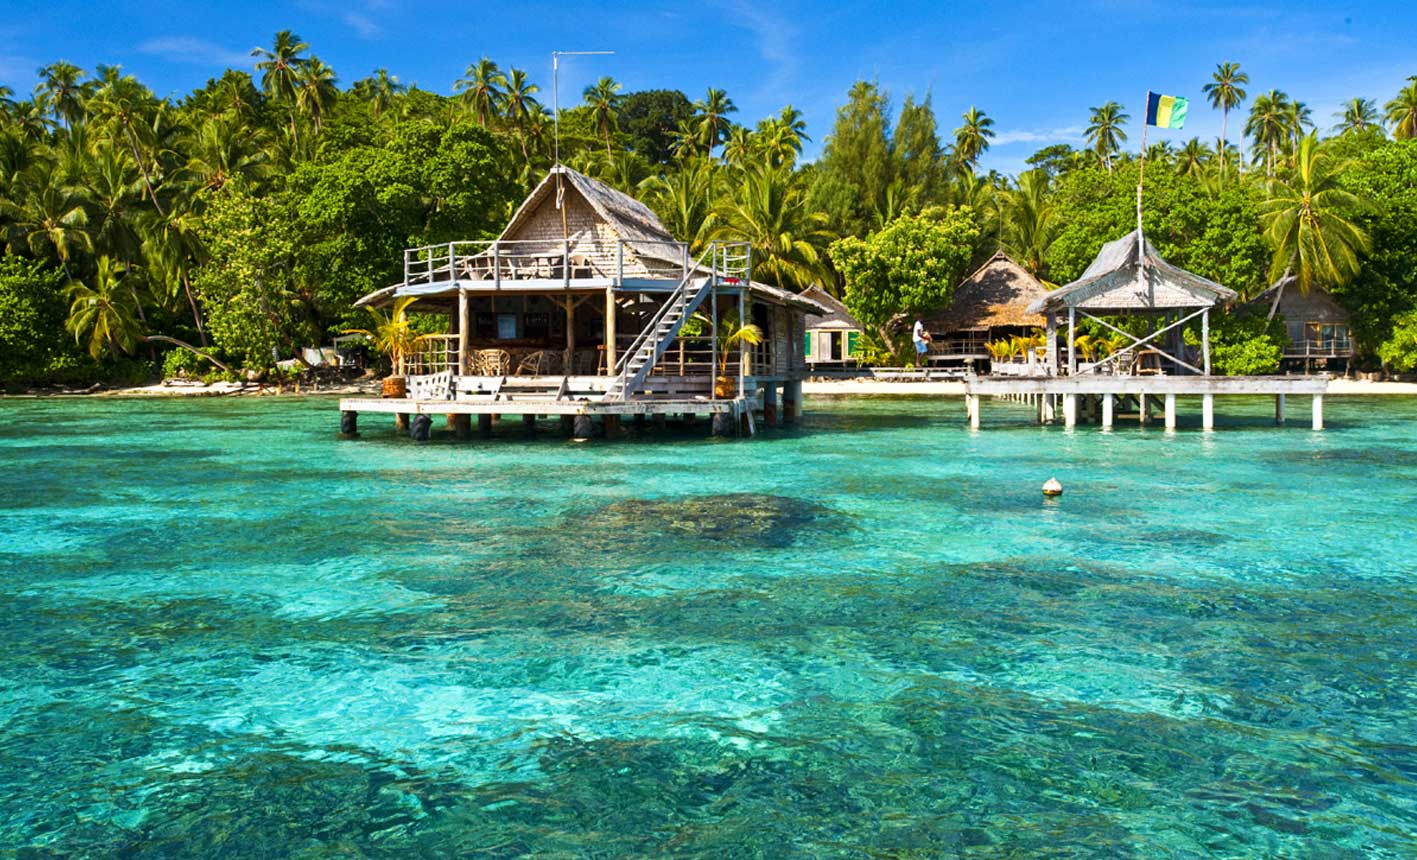 460x276px 36.44 KB Solomon Islands